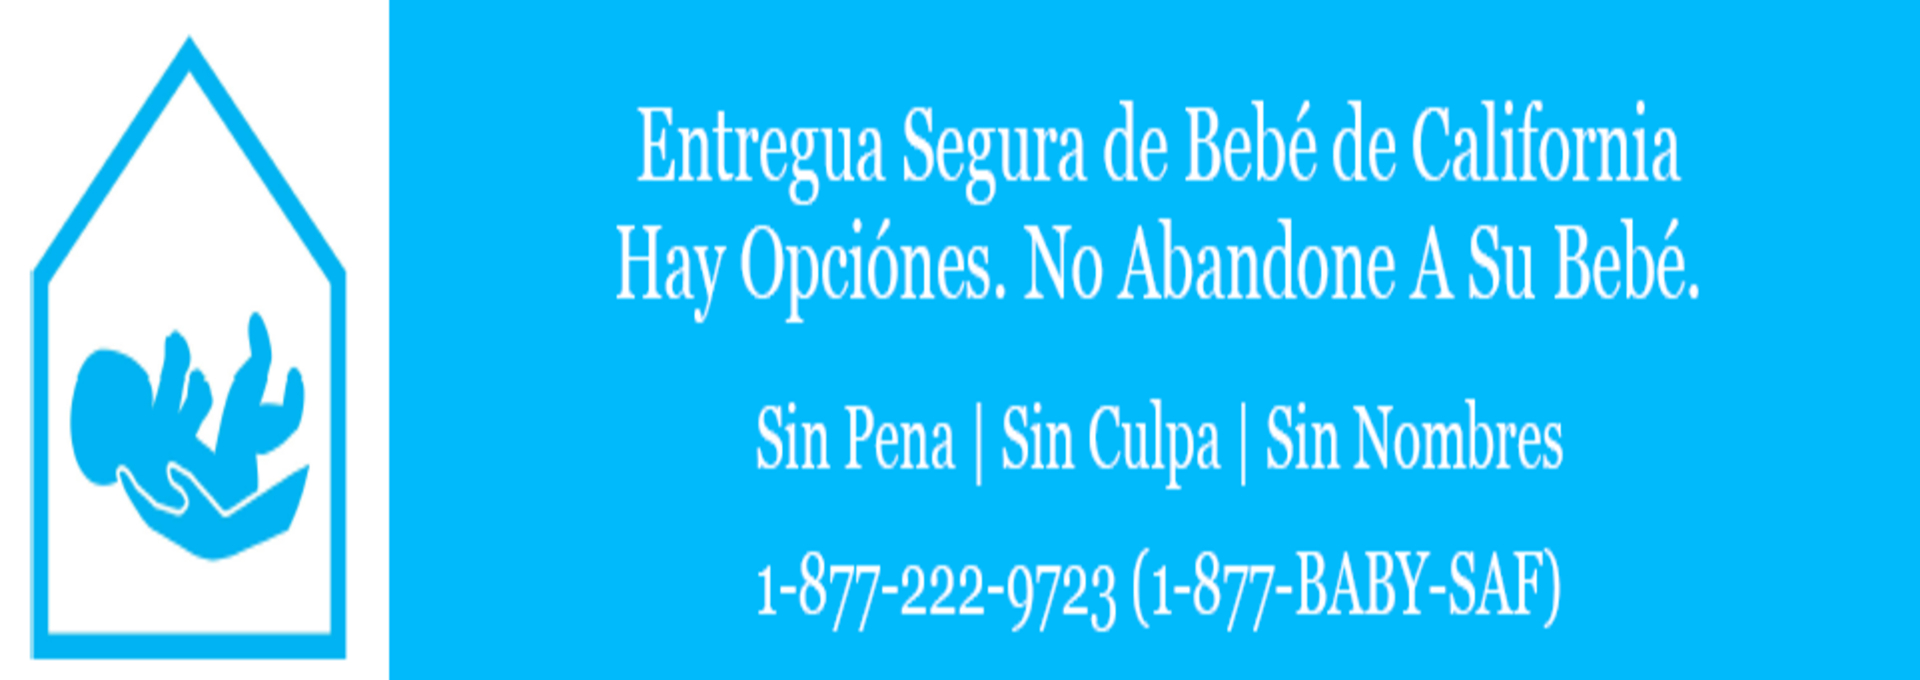 safe surrender baby spanish banner